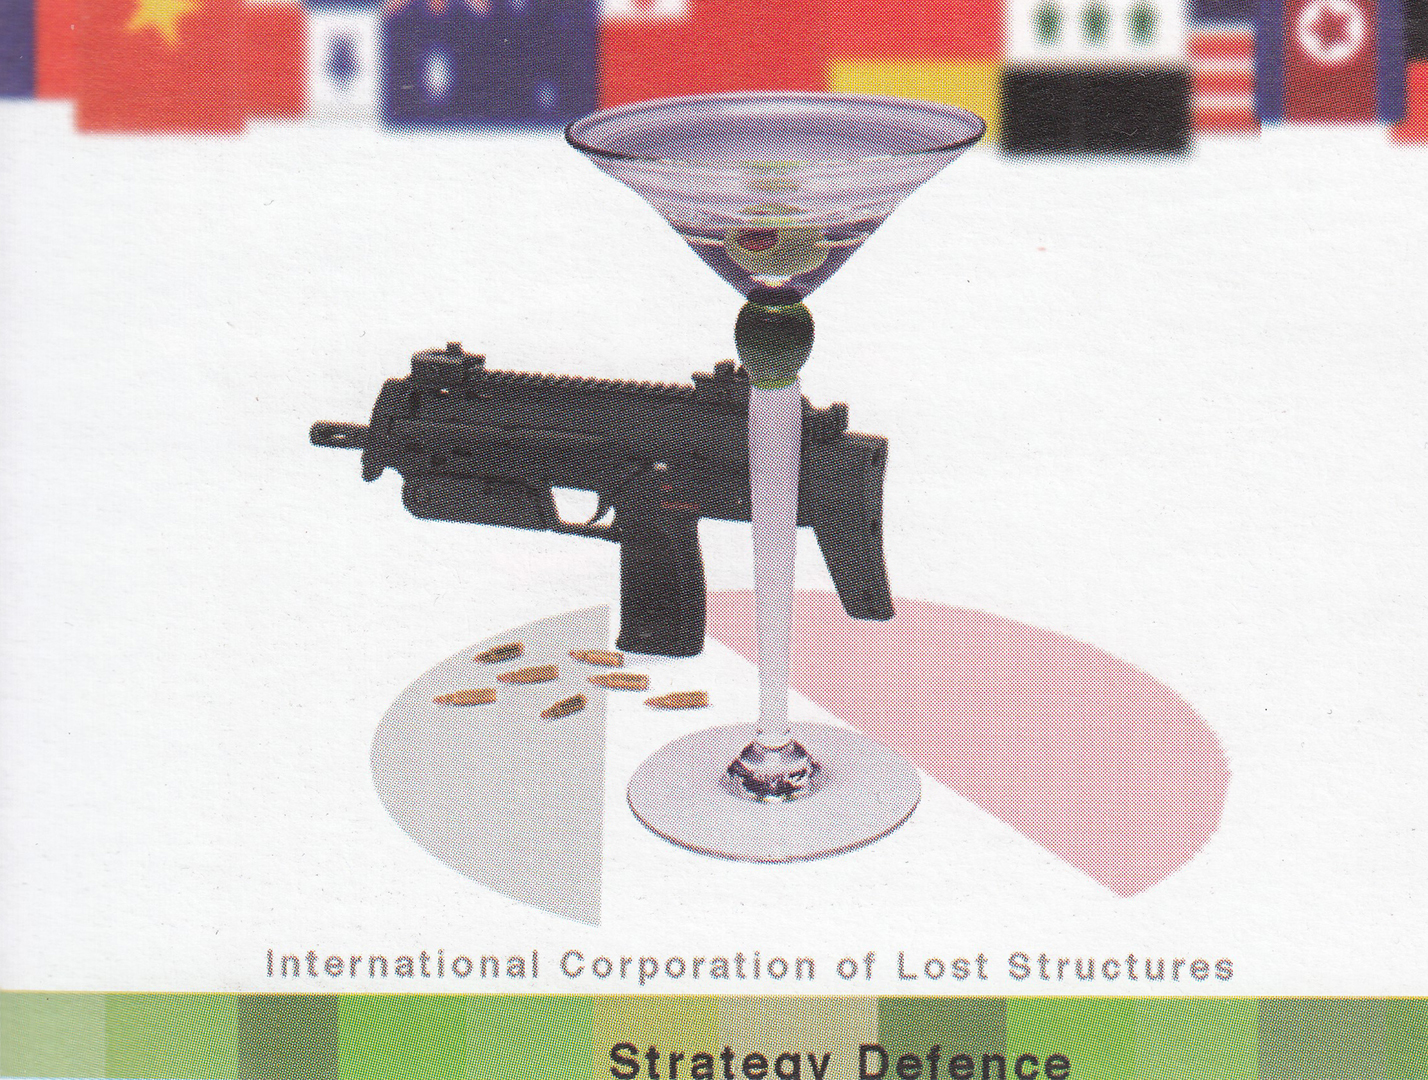 ©, Bronia Iwanczak and Suzanne Treister, The ICOLS' Strategy, Defense and Arms